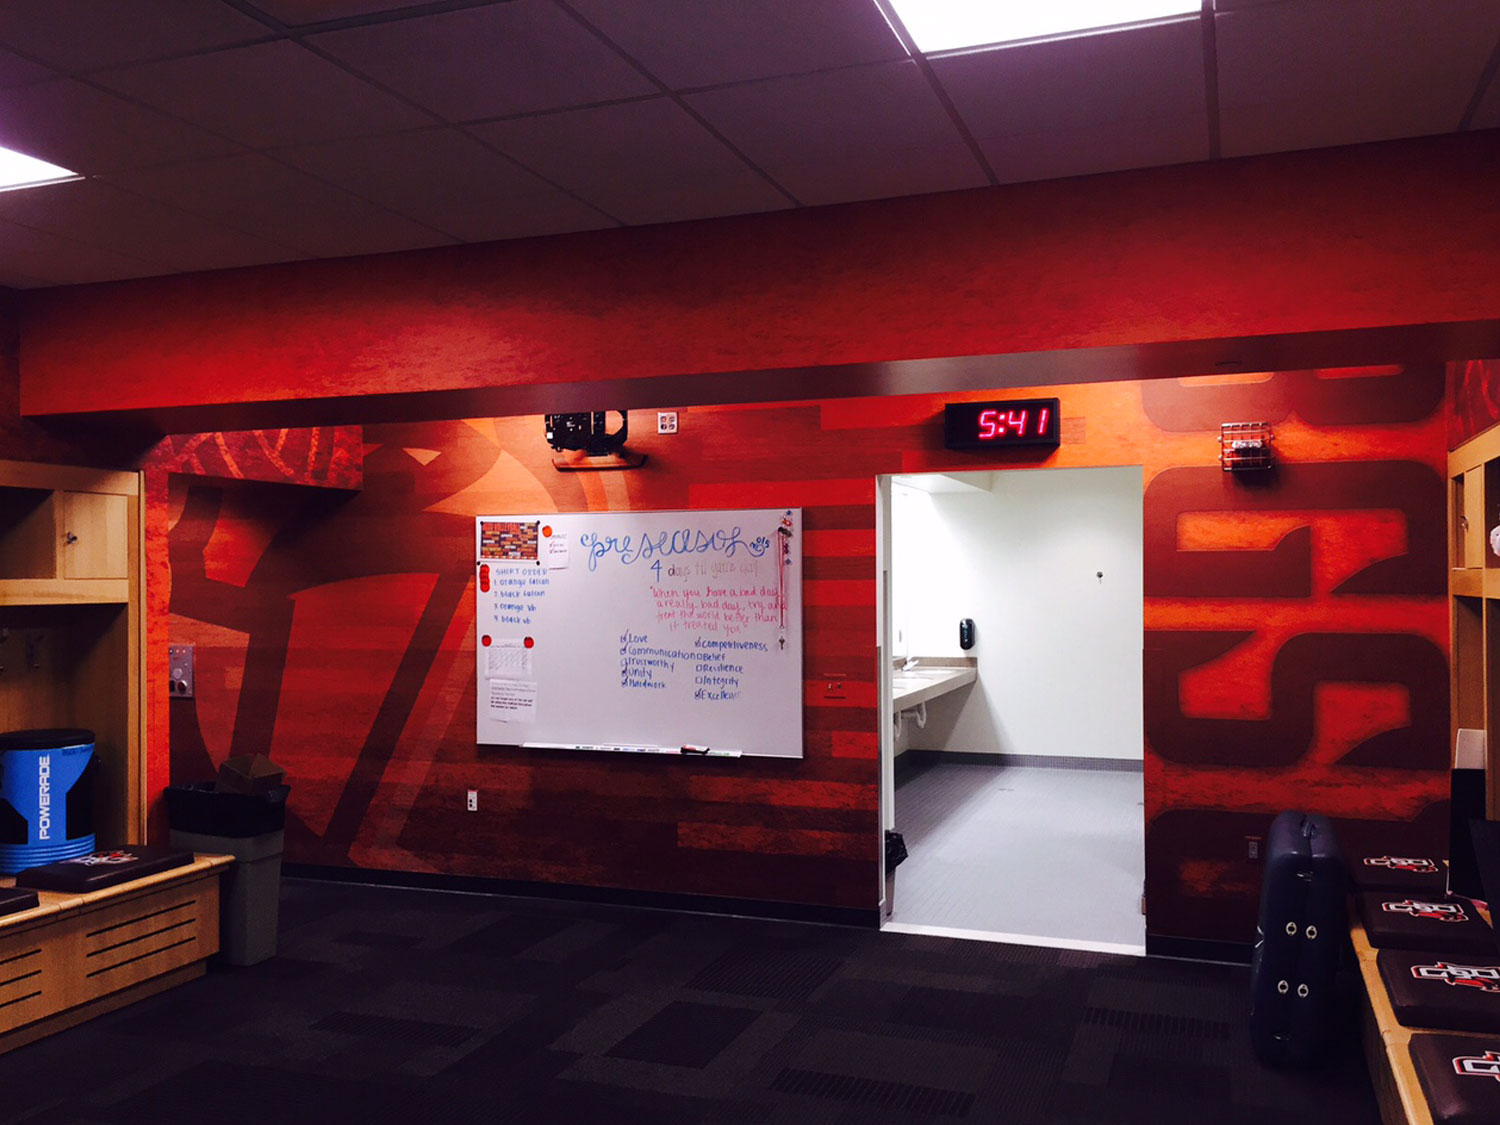 Bowling Green State University Volleyball Locker Room Signage